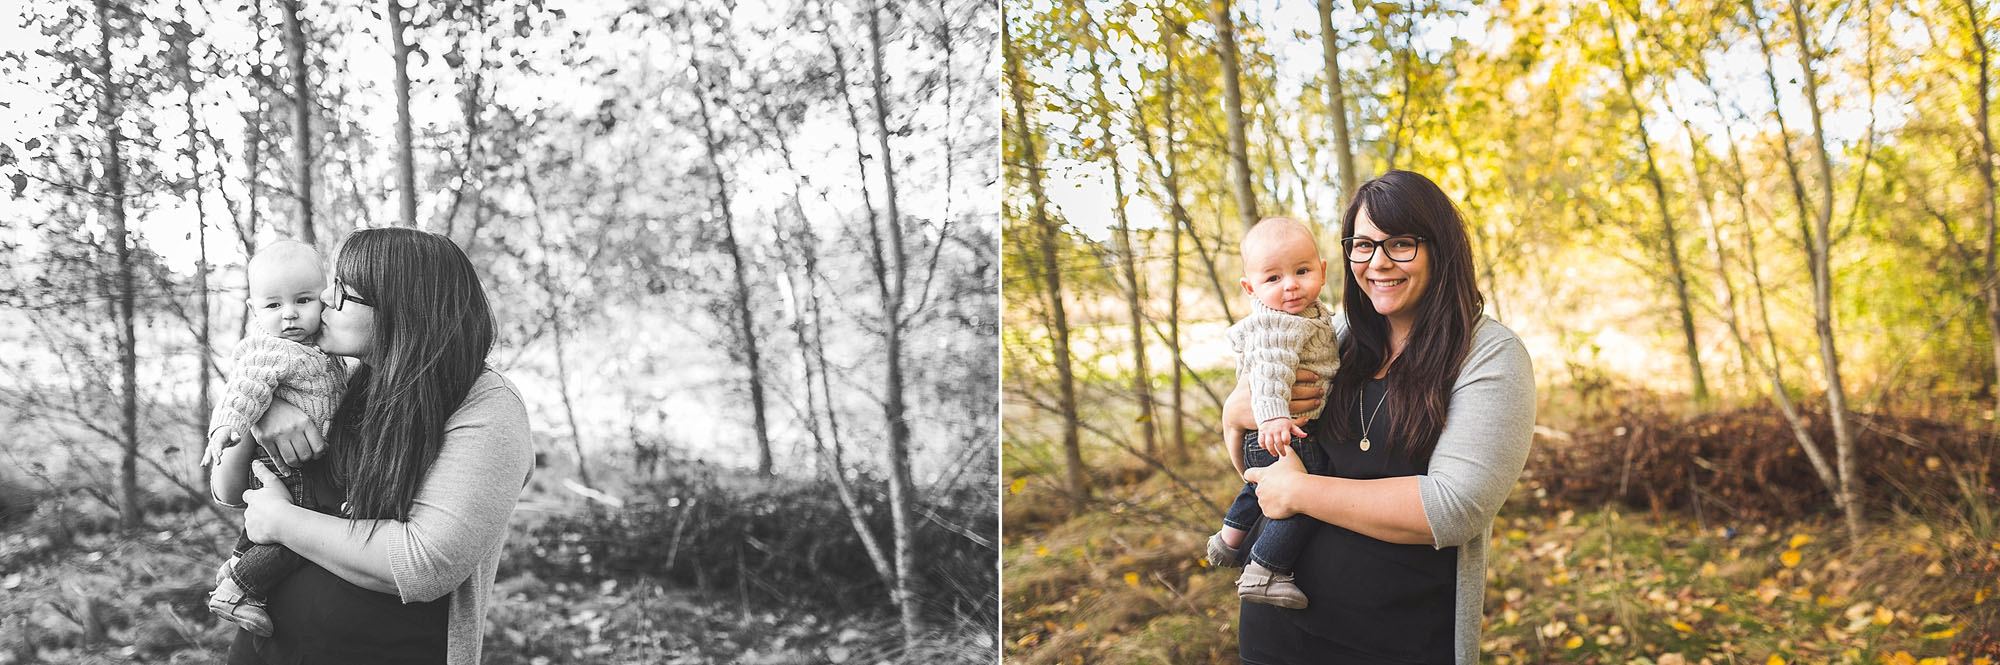 ashley vos photography seattle area lifestyle family and birth photography_0101.jpg